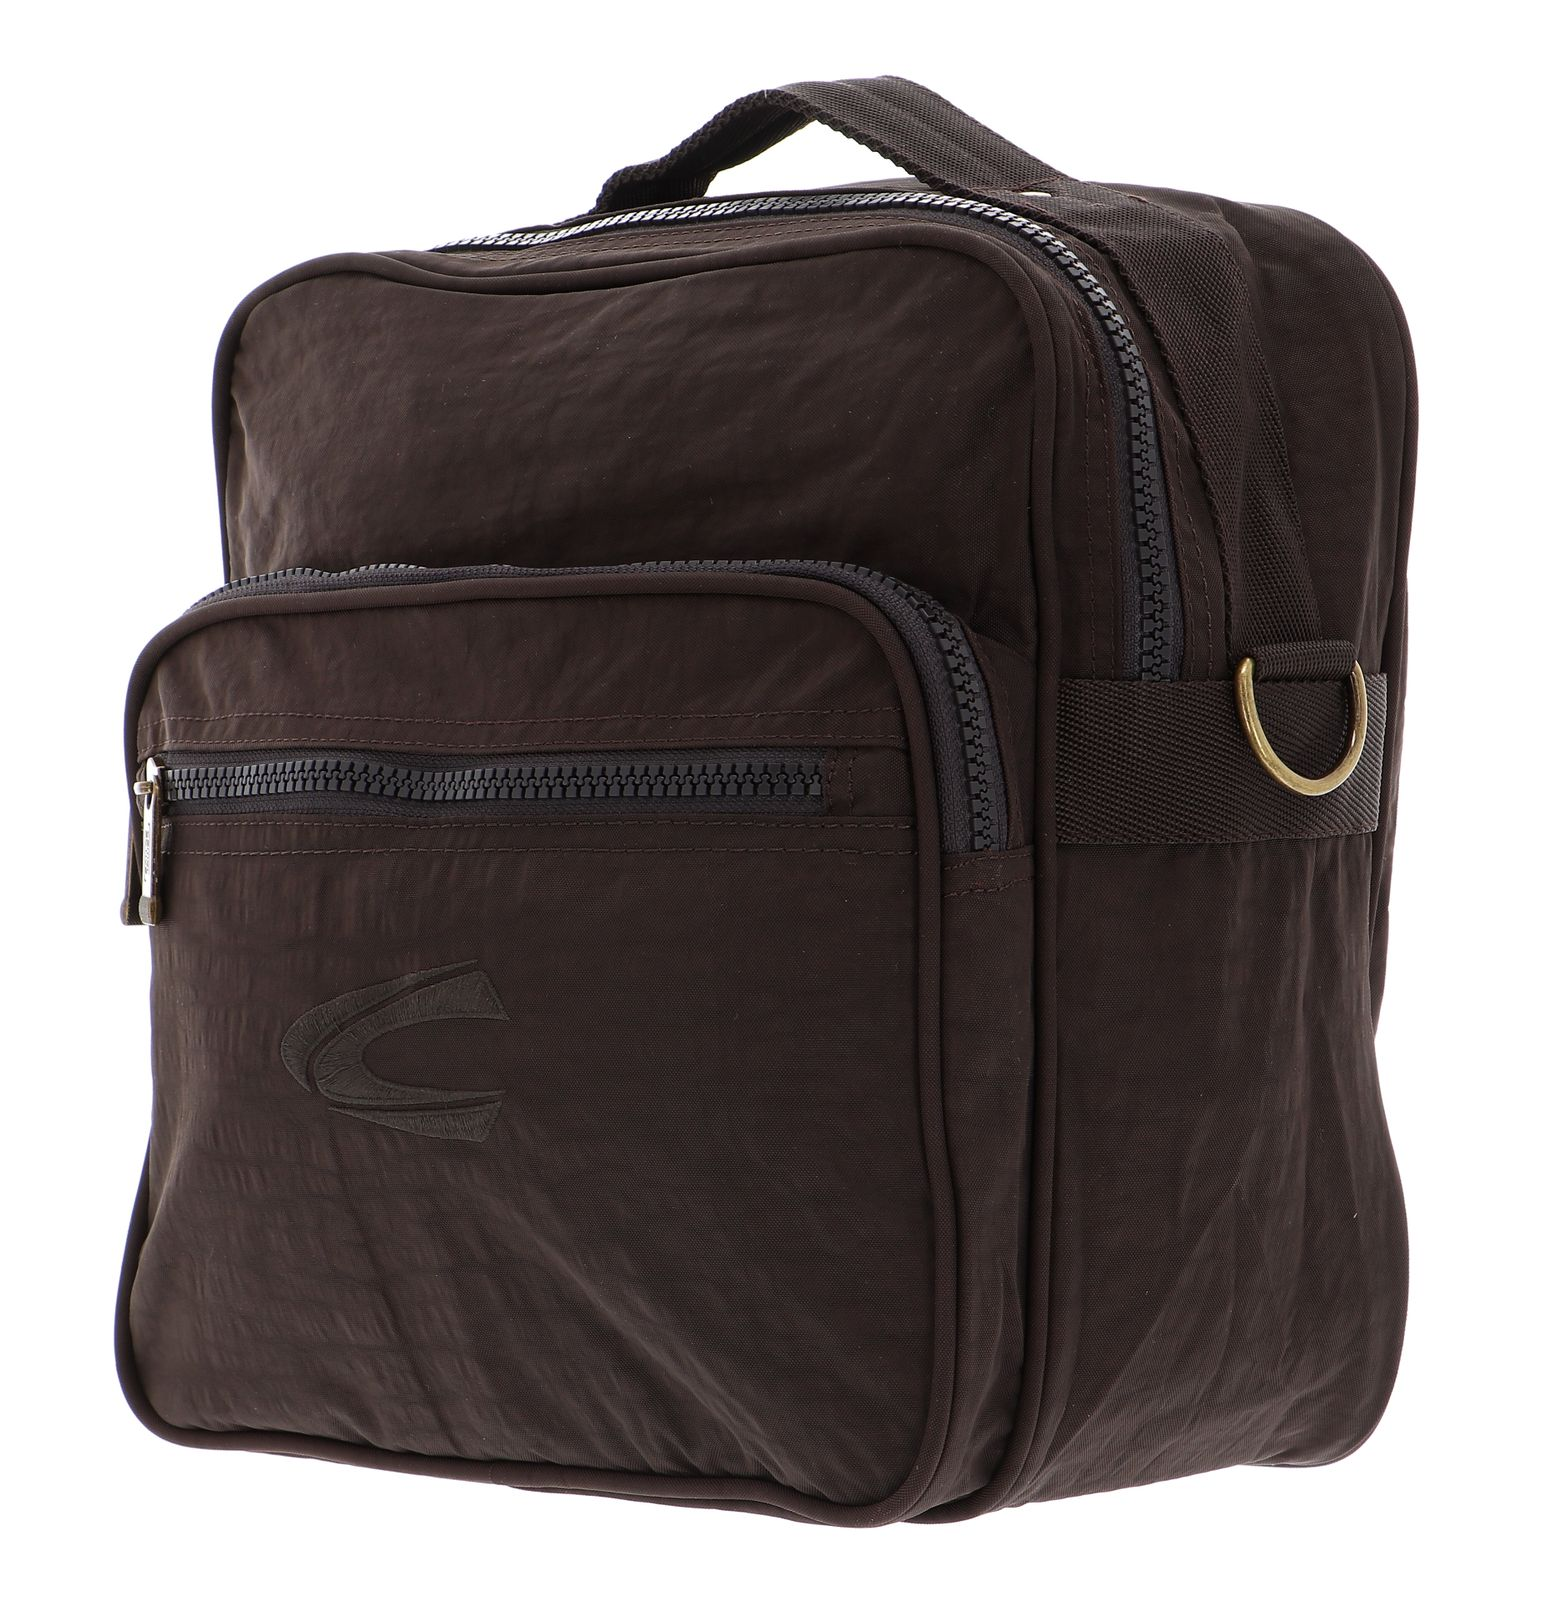 Camel Active Journey Carry On Bag Brown